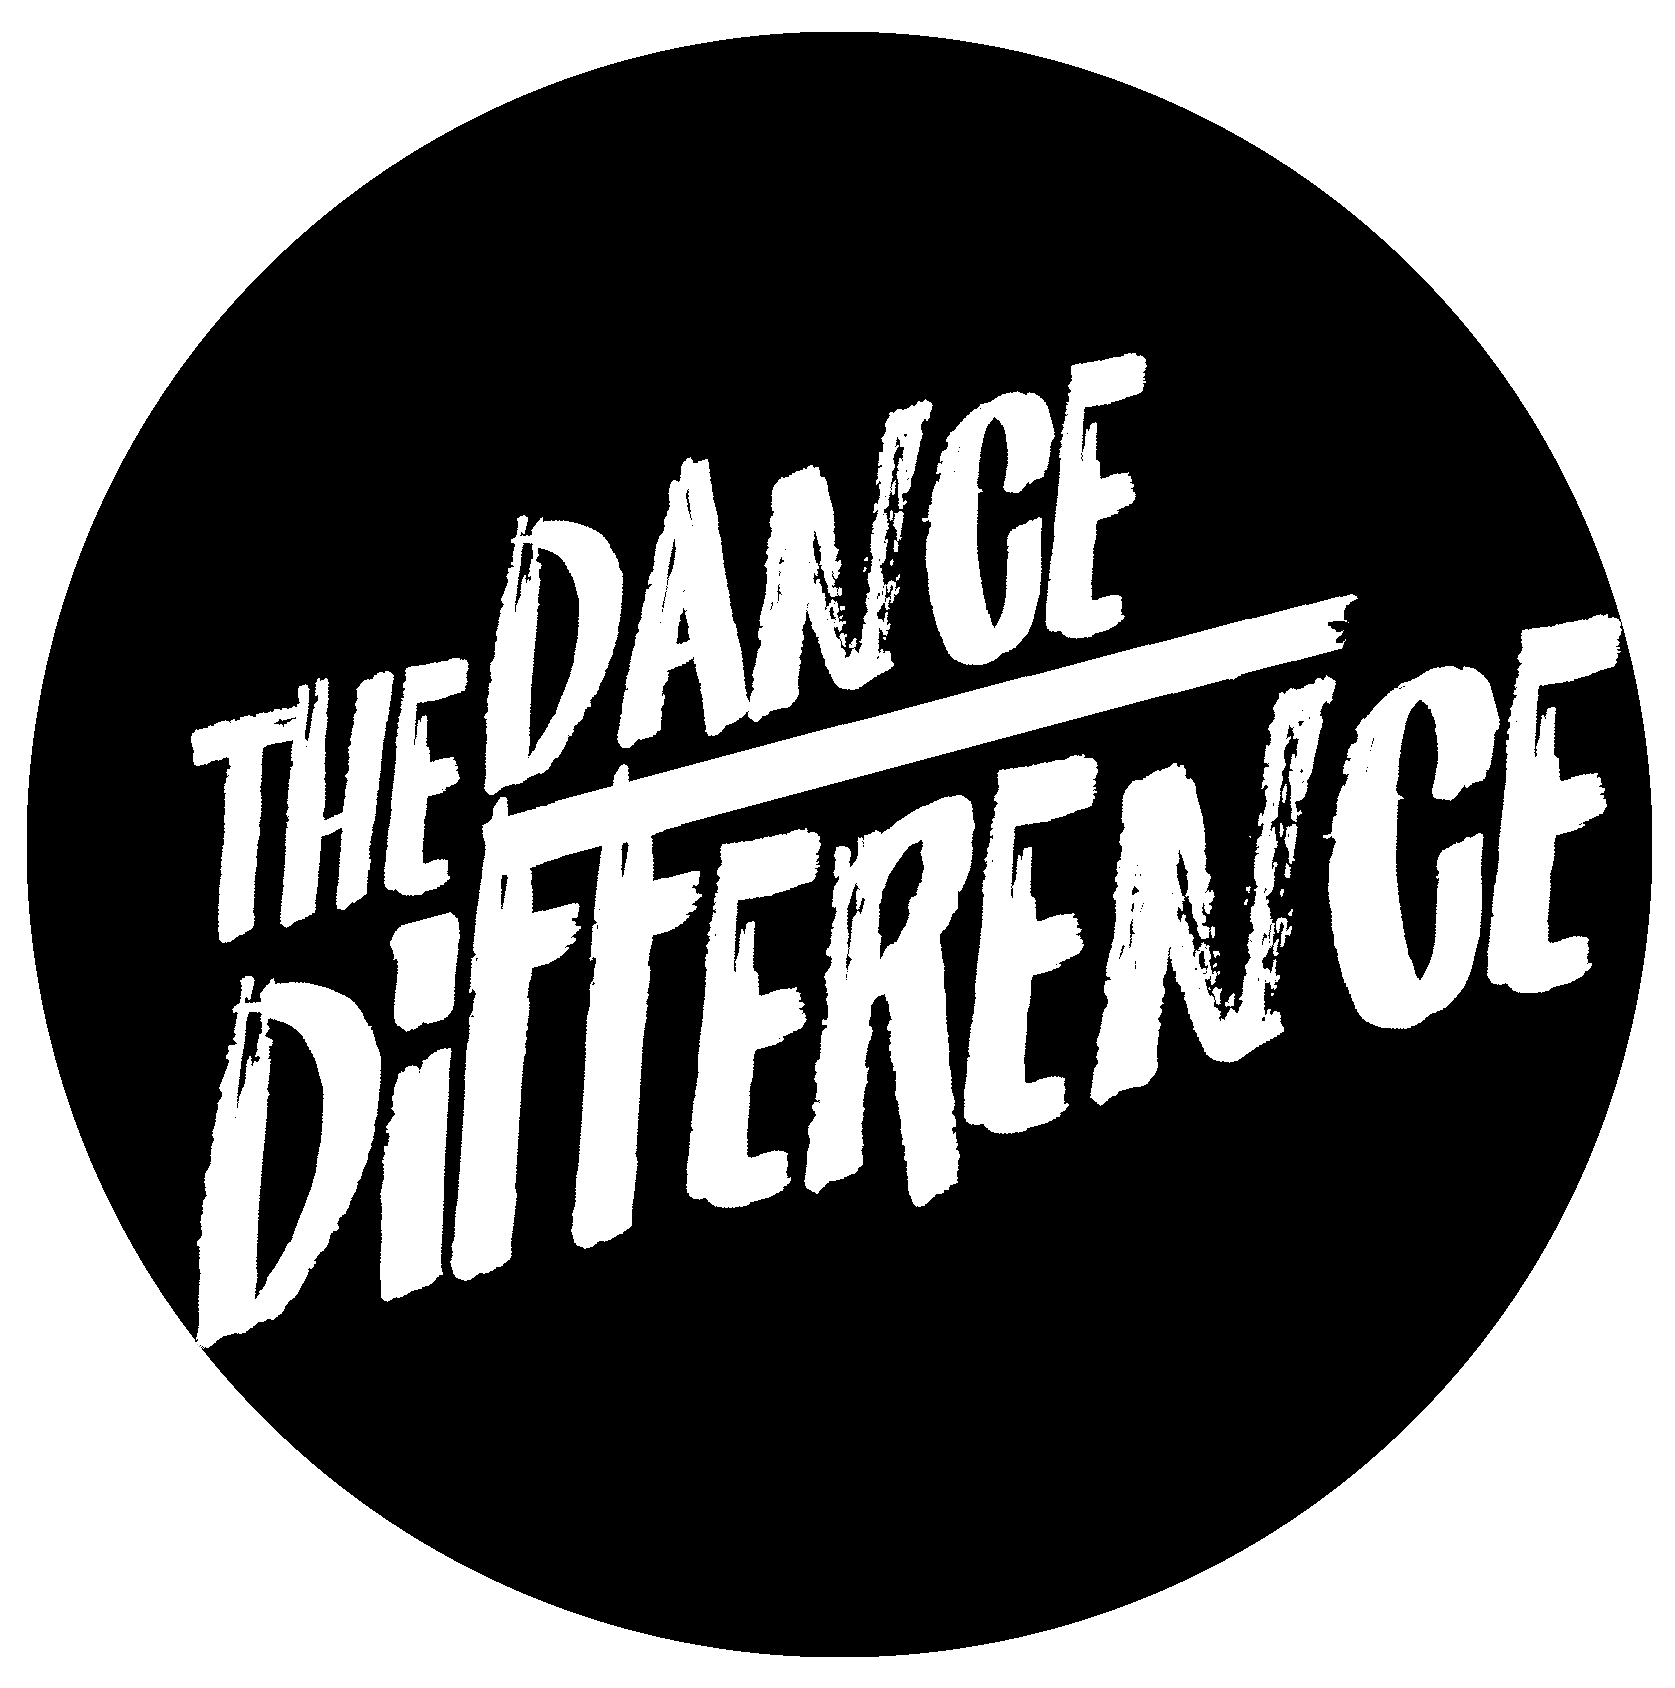 The Dance Difference